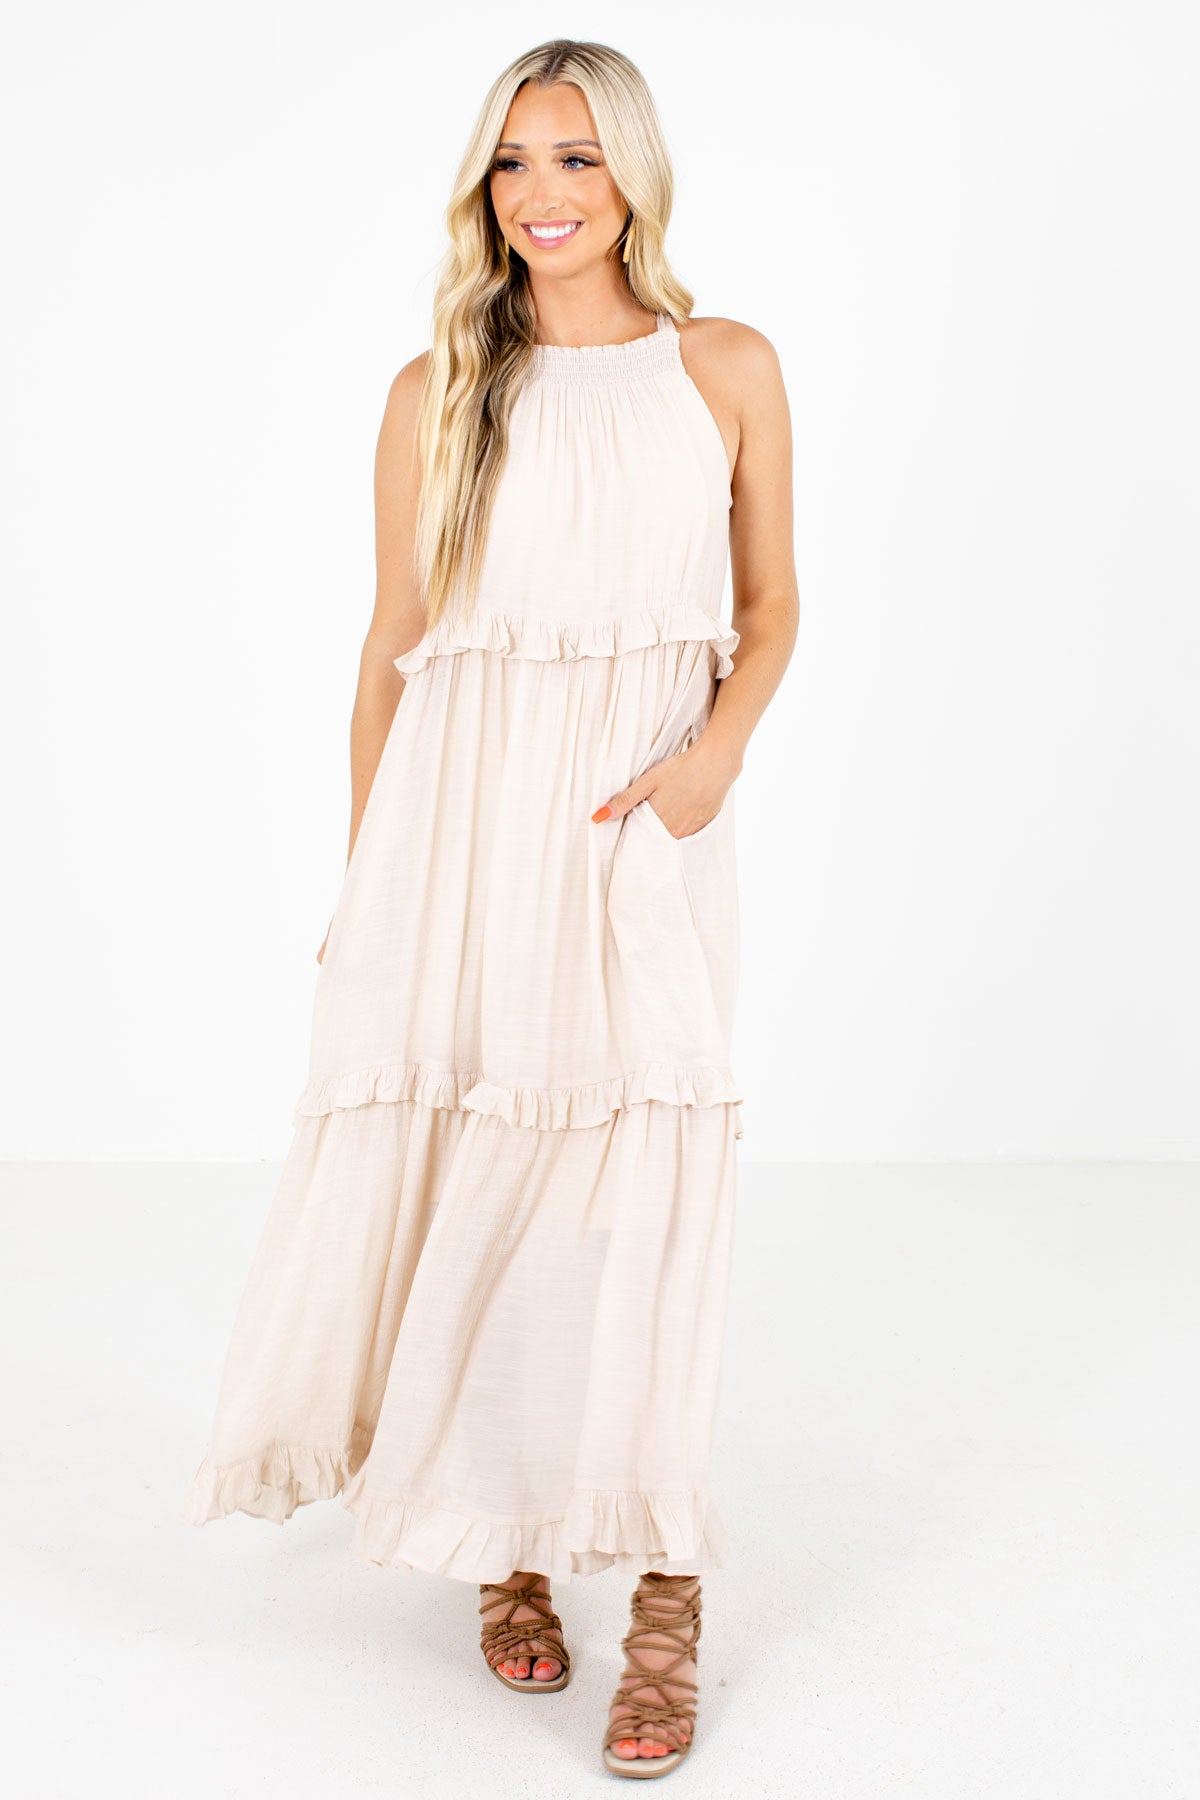 Beige Boutique Maxi Dress with Pockets for Women